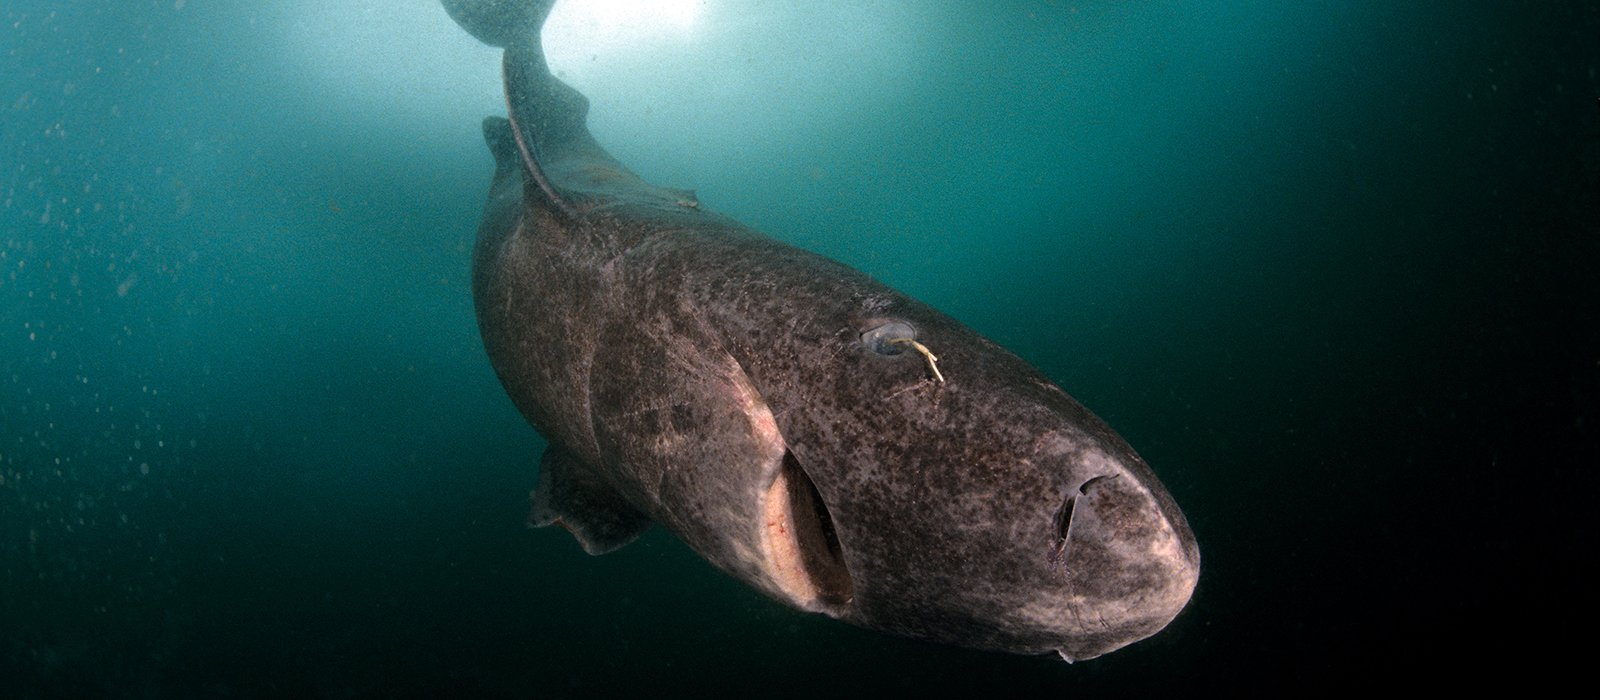 Greenland Shark with copepod © Franco Banfi/naturepl.com